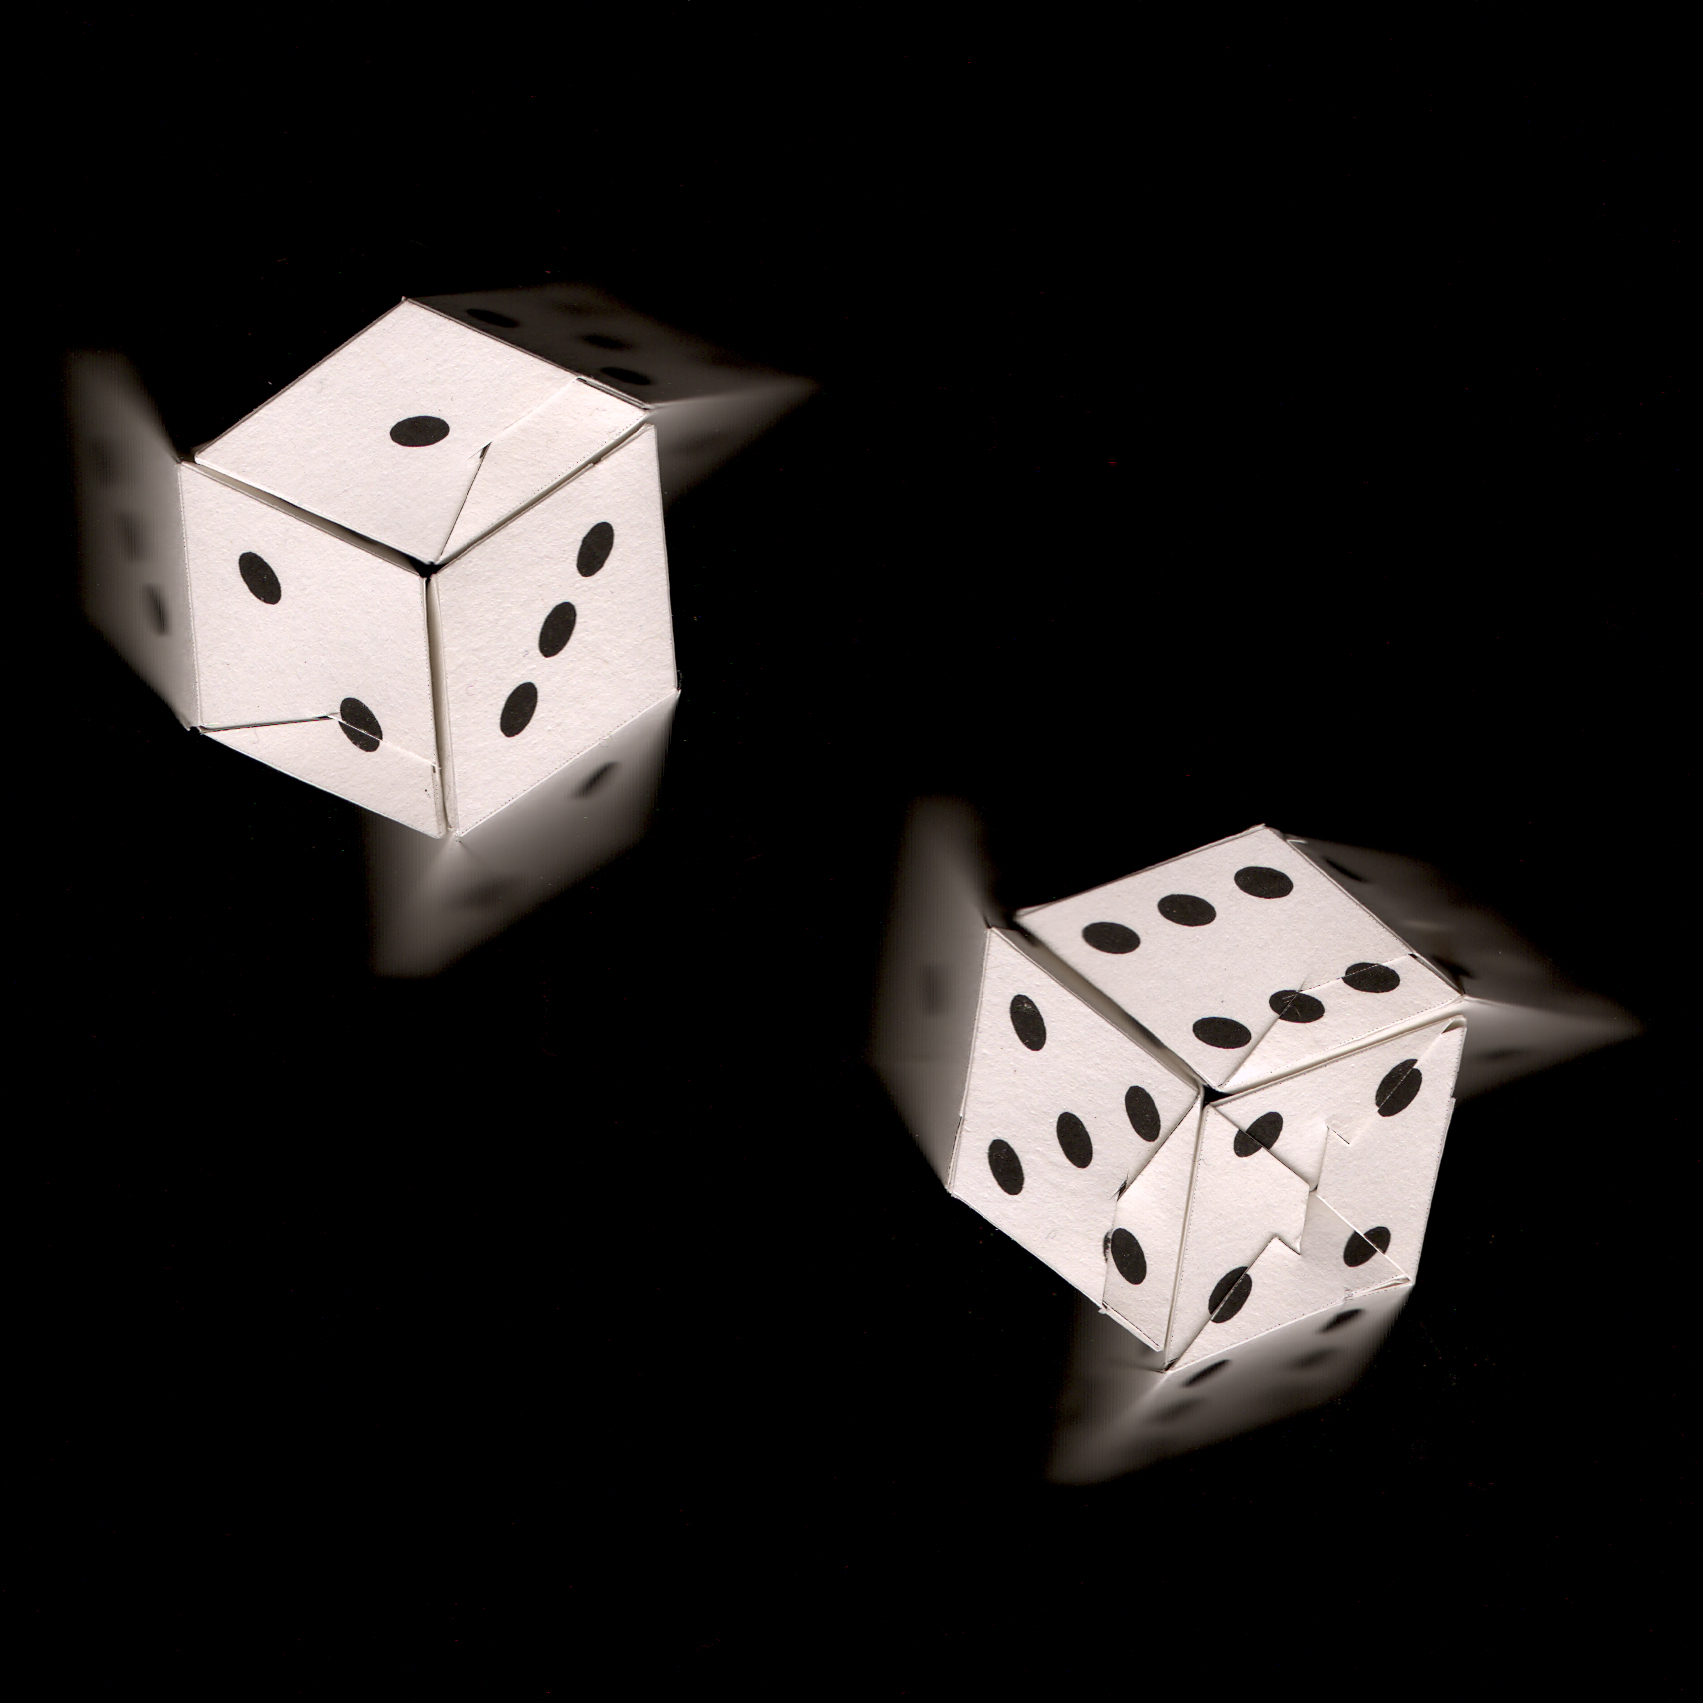 6 dice 2 dice - scanned - paper